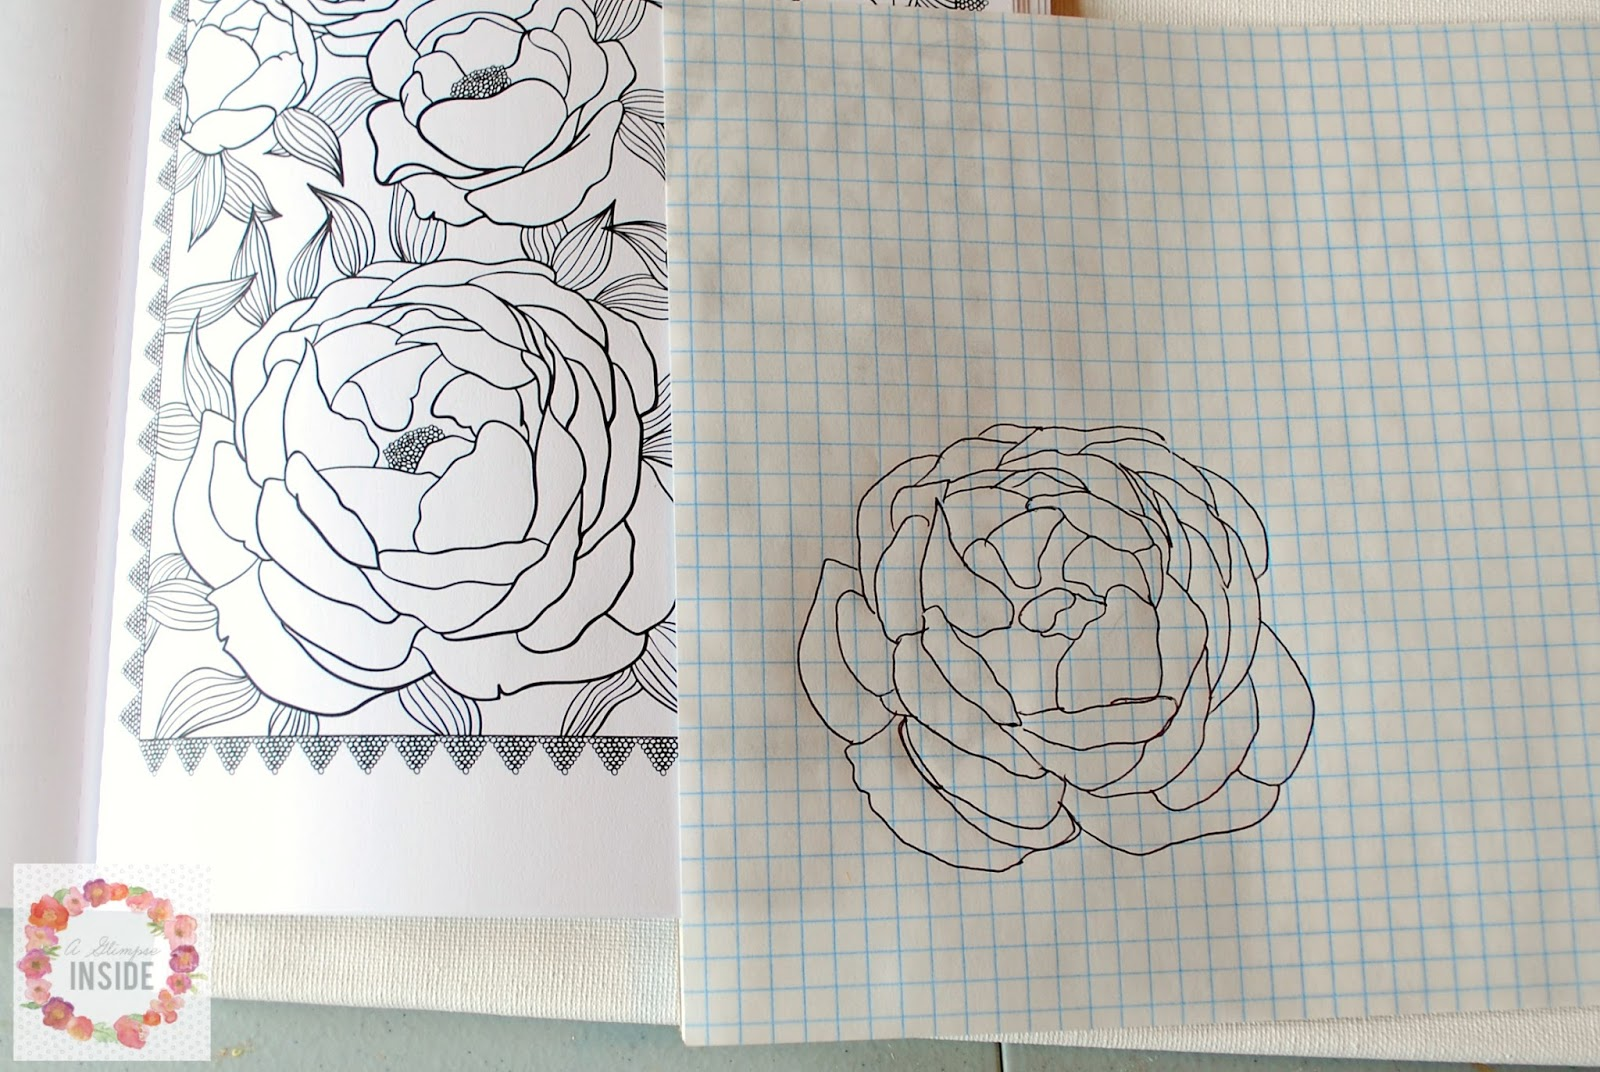 How To Draw A Rose On Graph Paper Jpg 1600x1072 Flower Grid Paper Drawings